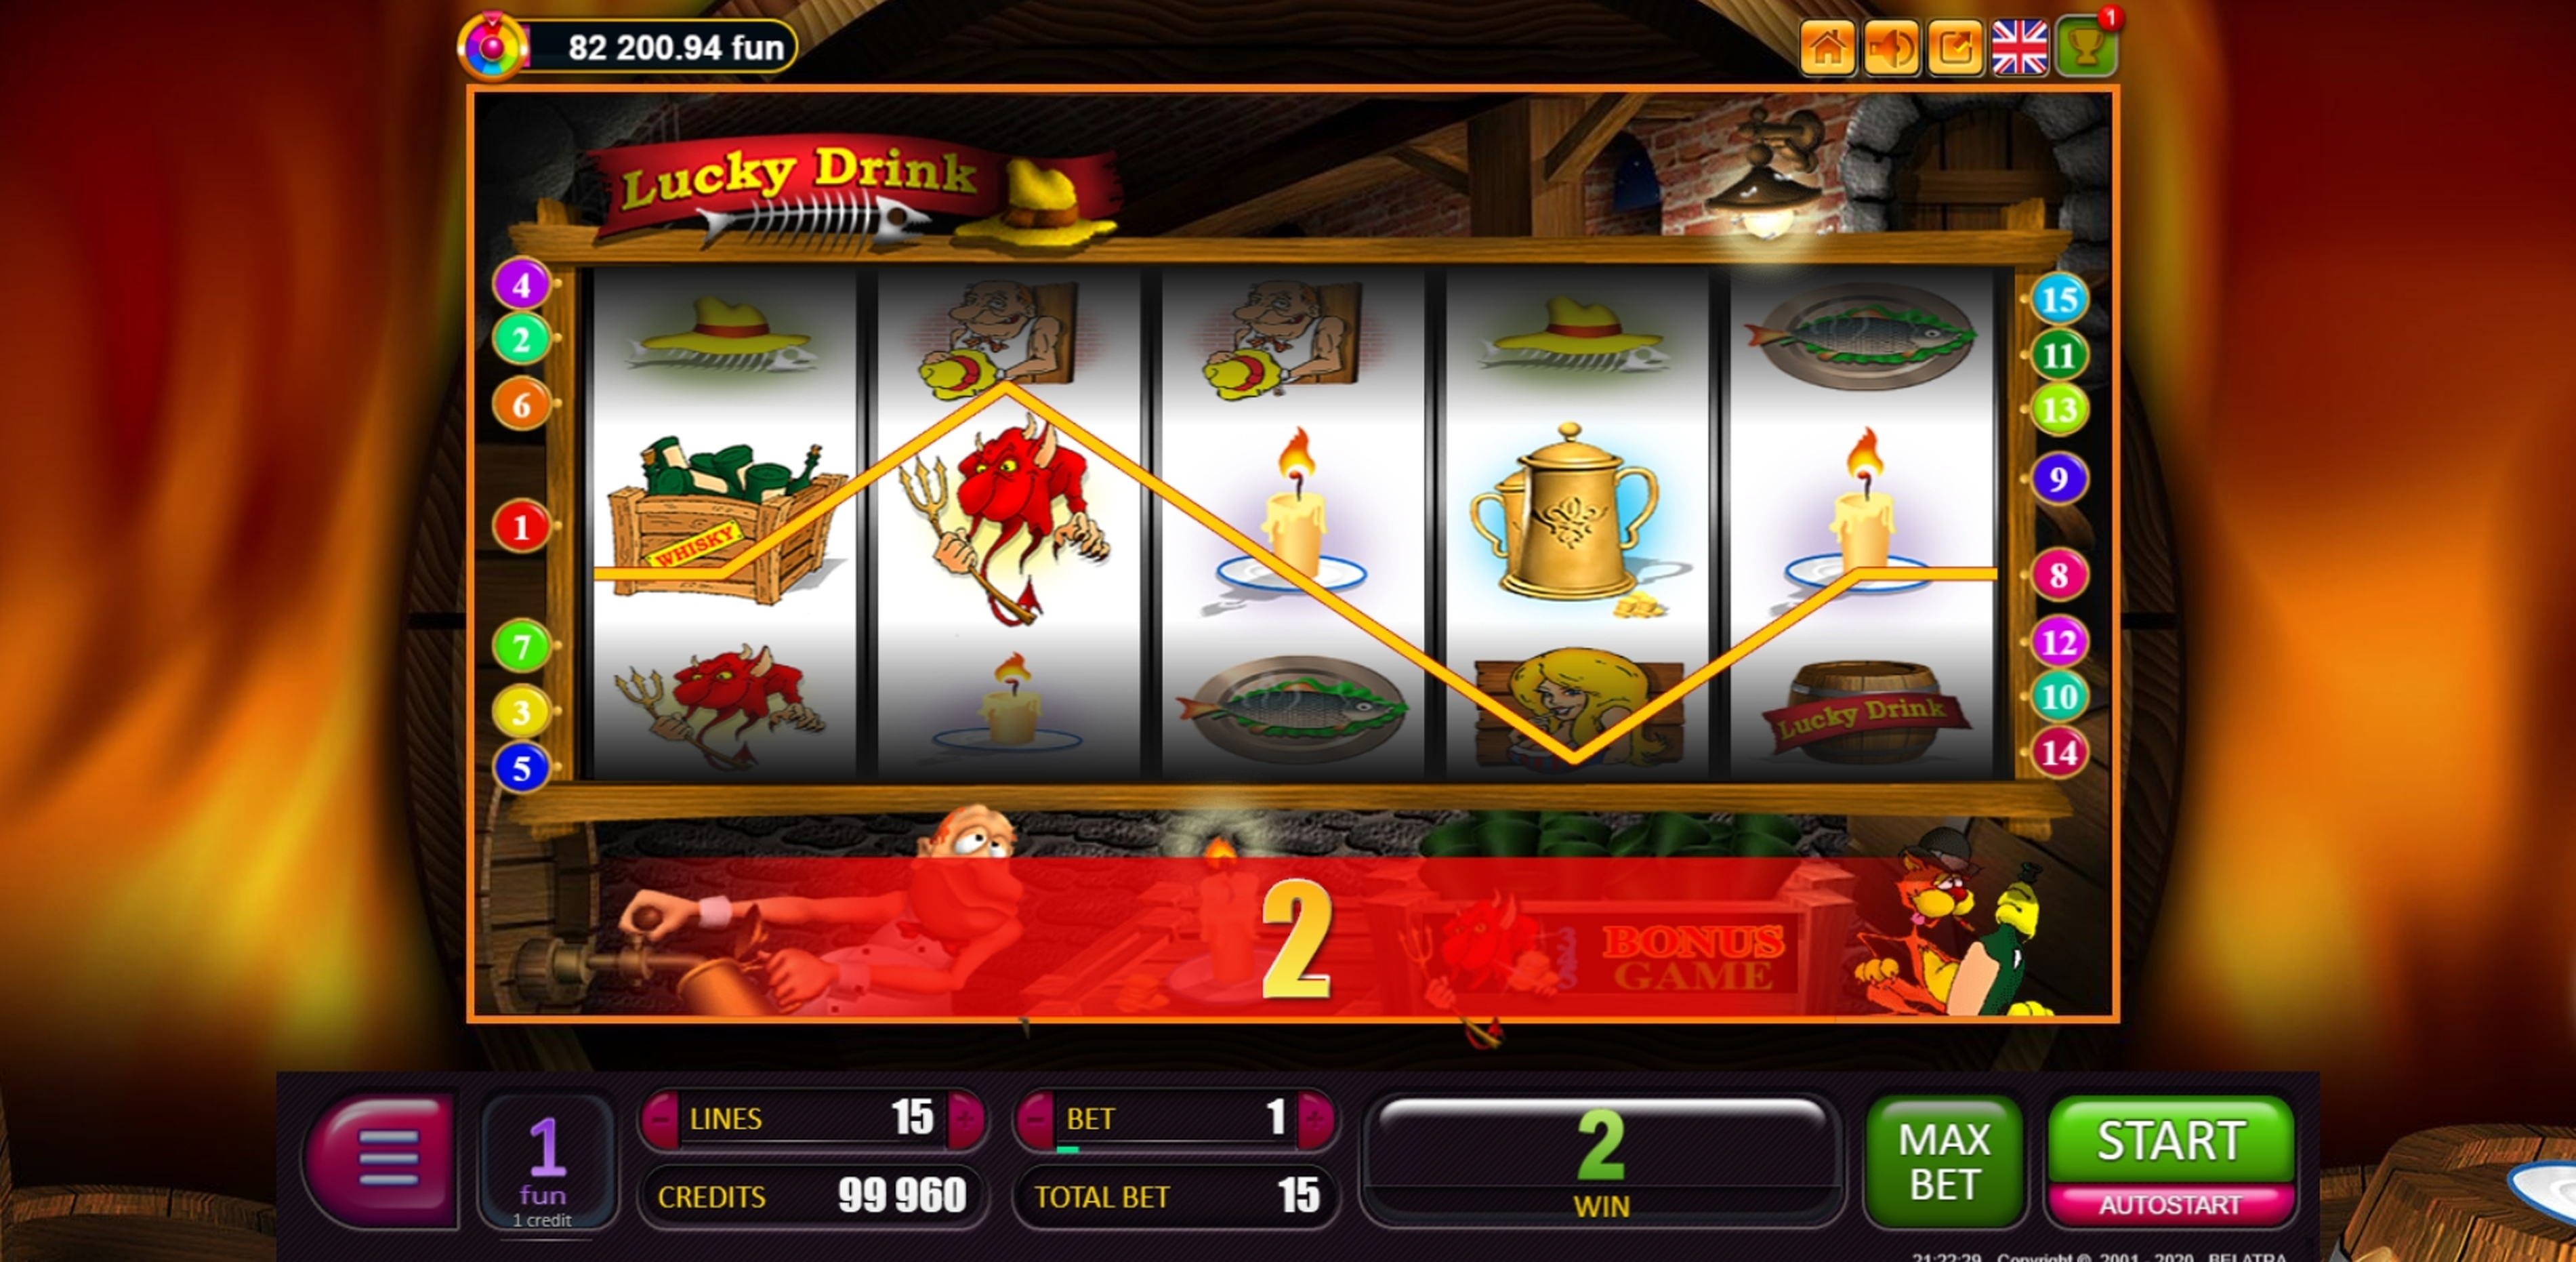 Win Money in Lucky Drink Free Slot Game by Belatra Games